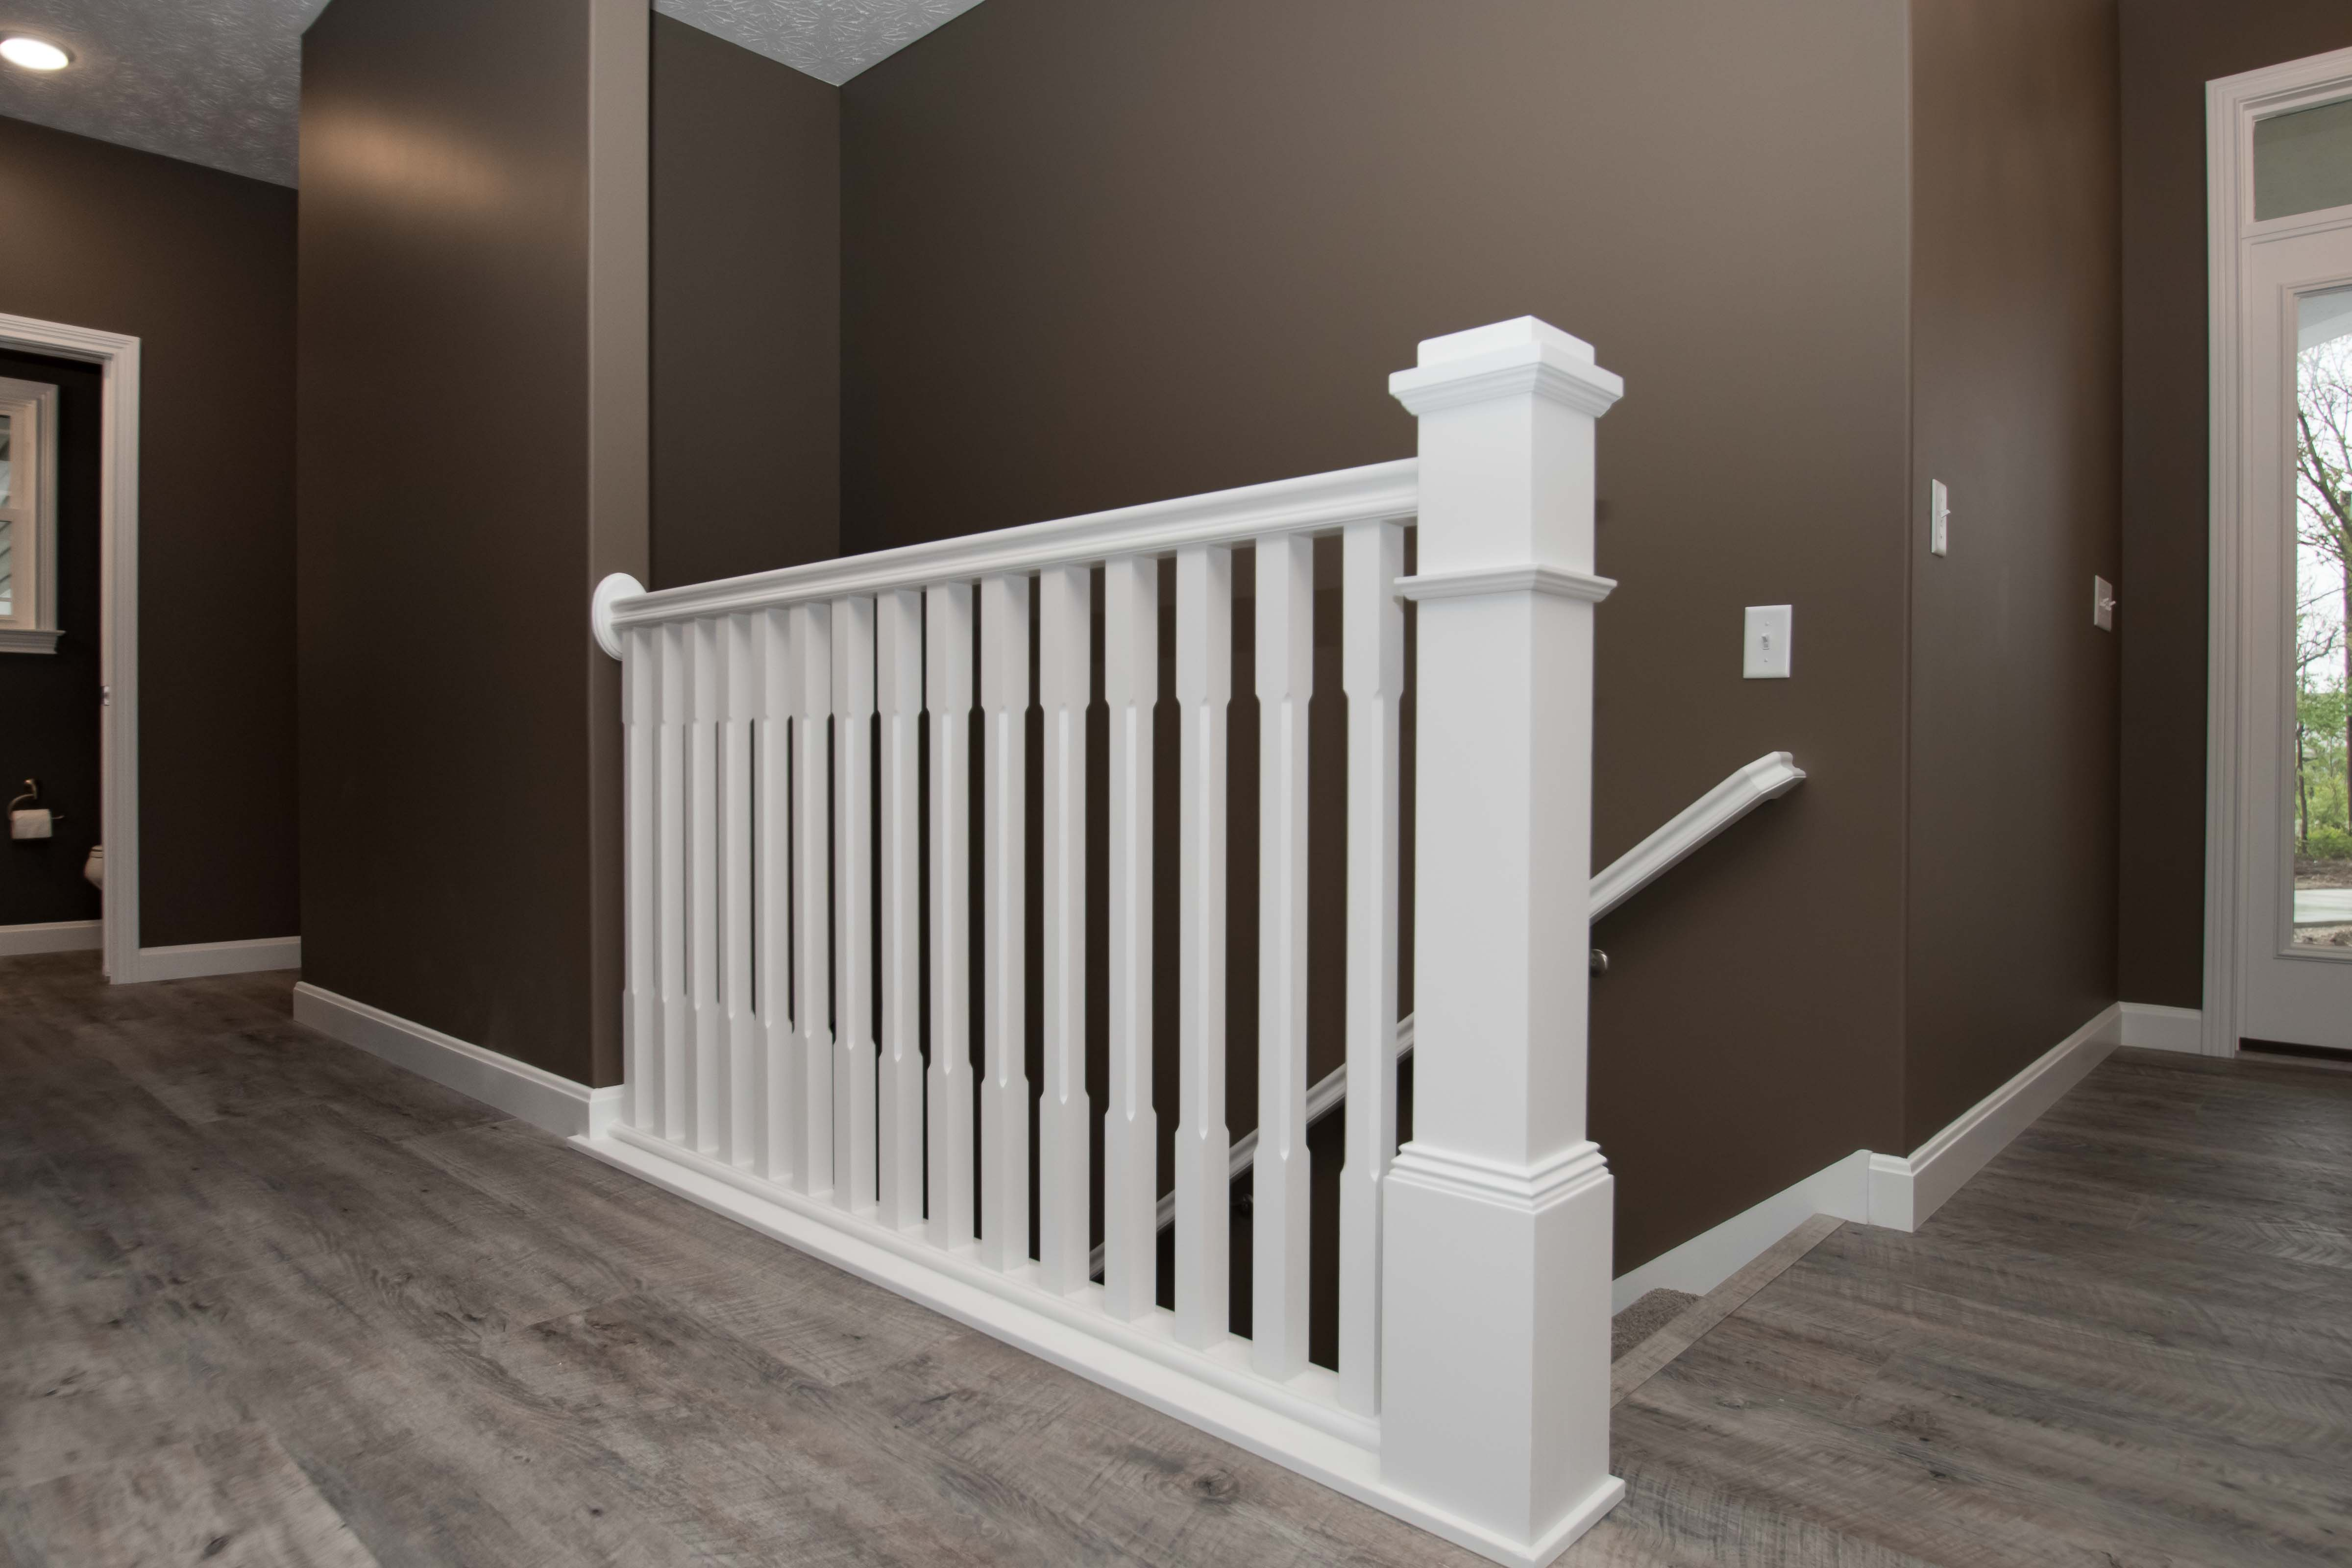 Painted plain box newel posts. Painted chamfered-square spindles.